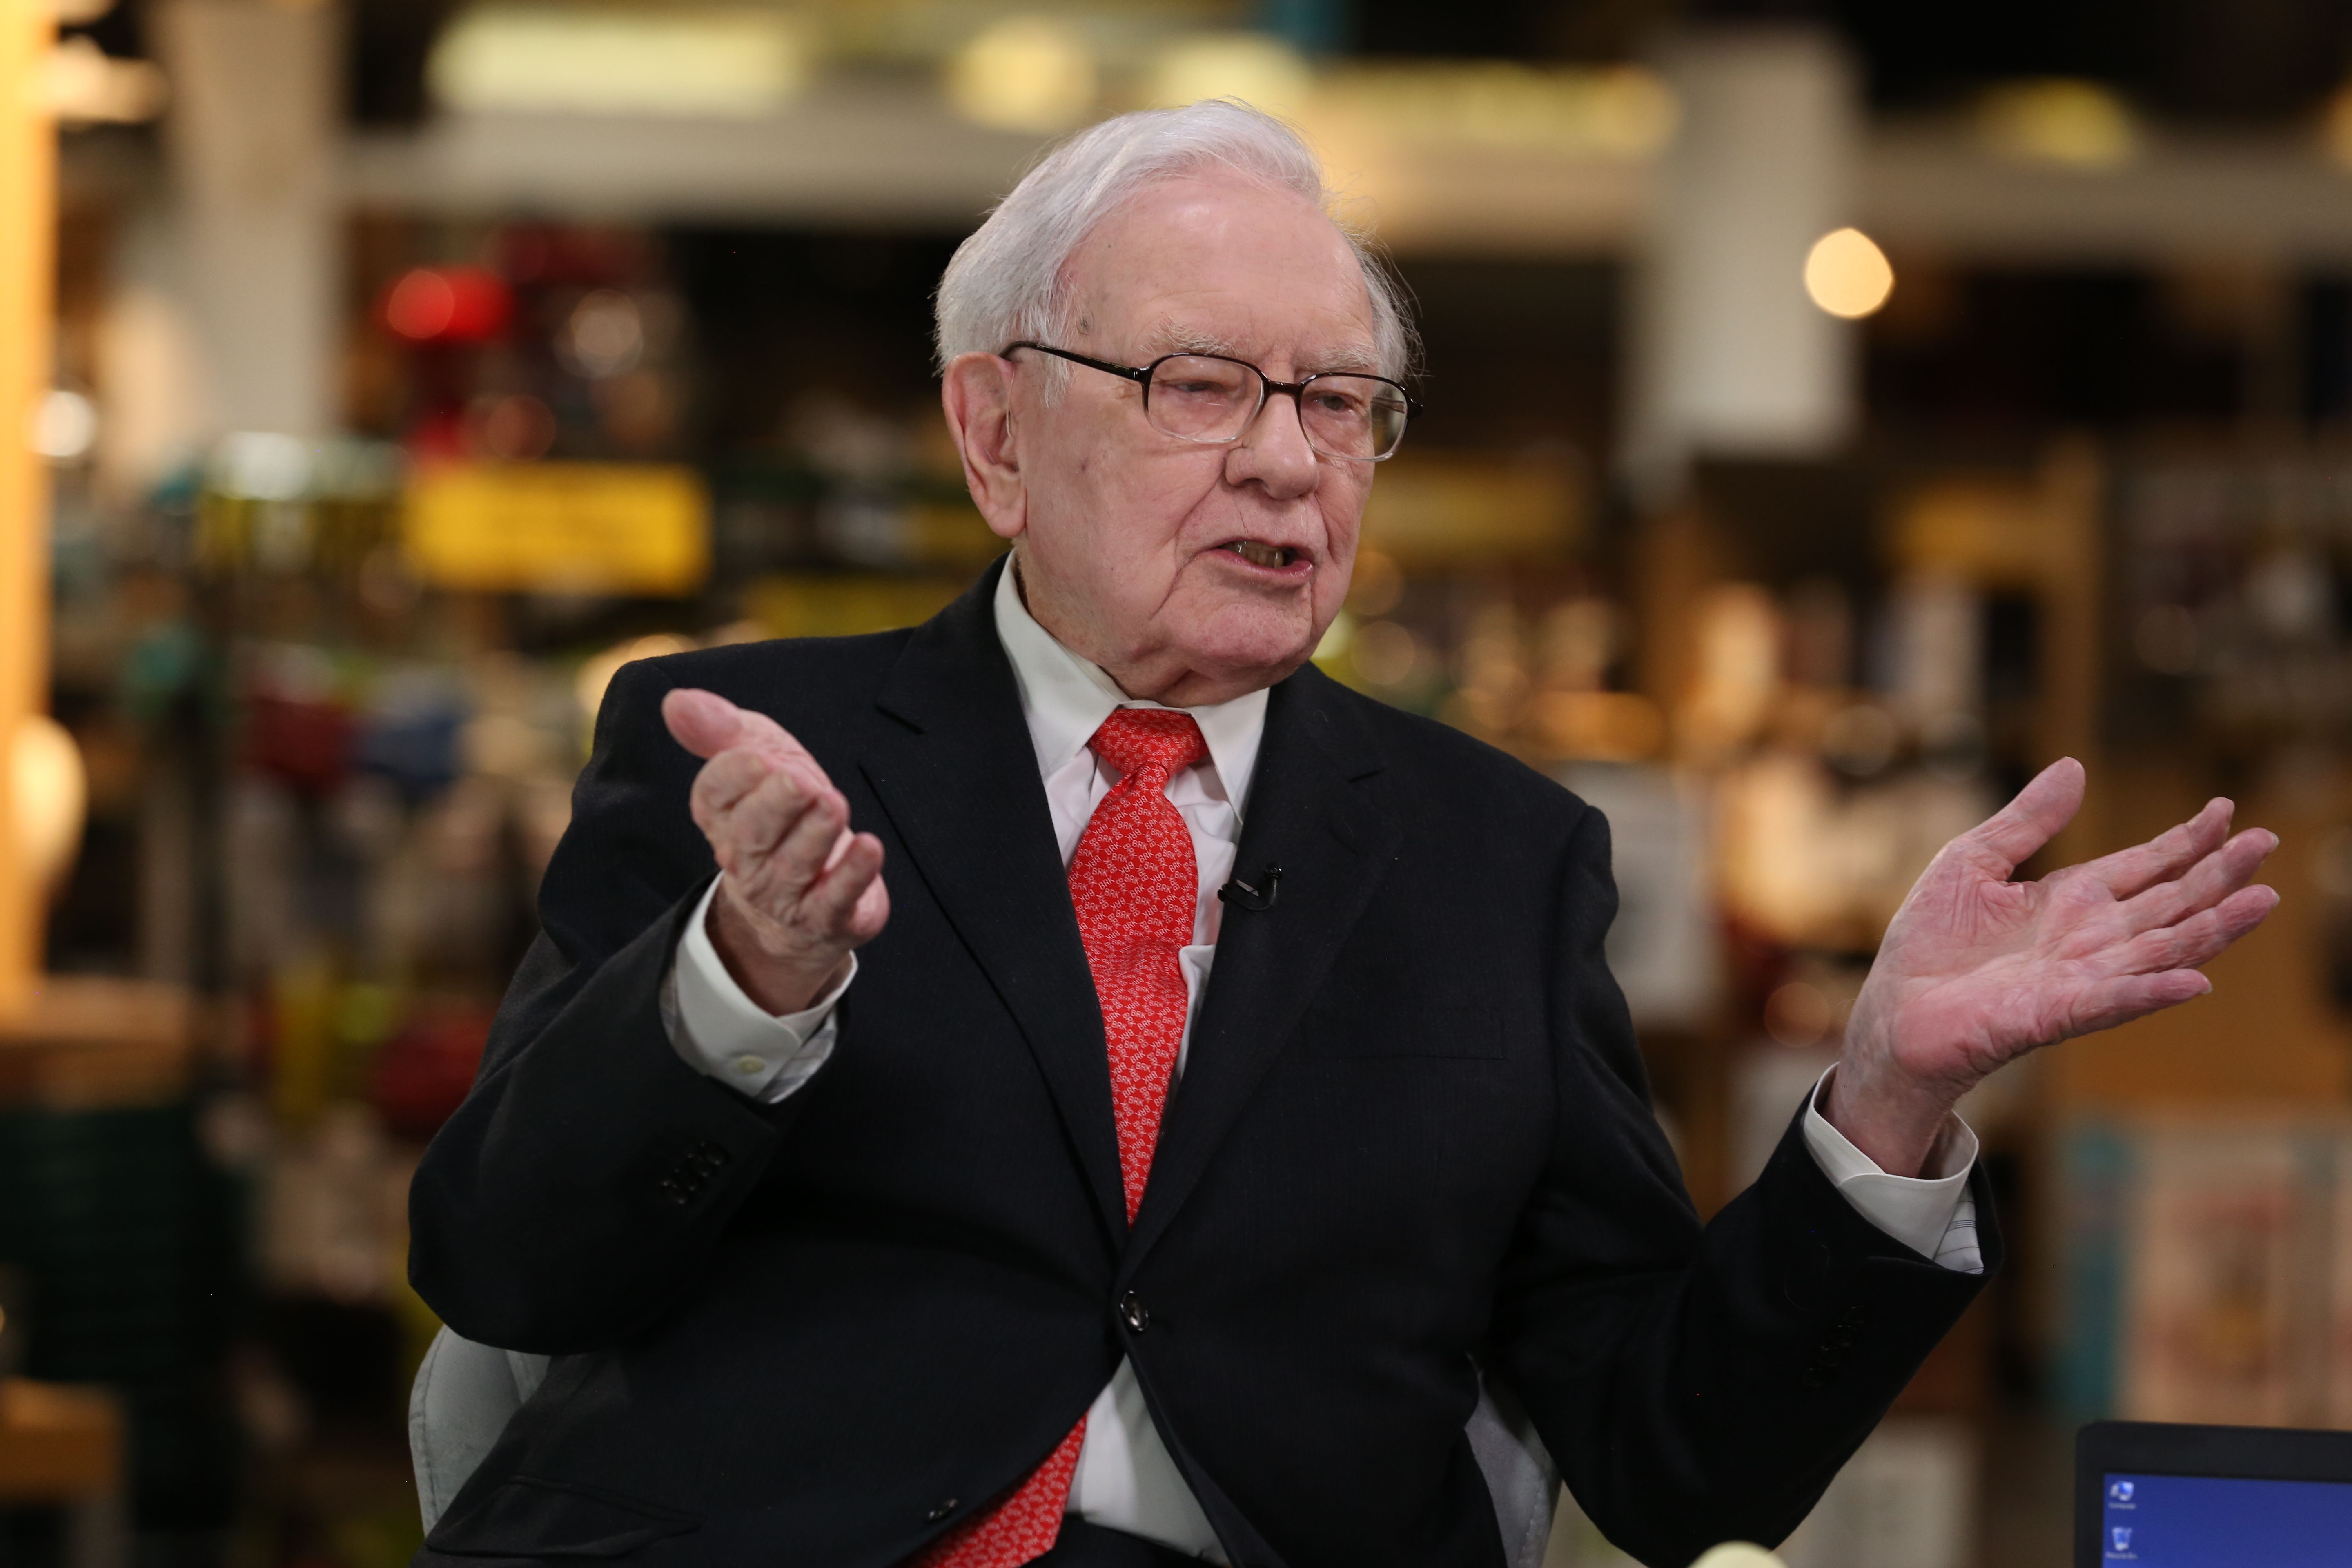 Berkshire investment in Occidental is 'classic Buffett' but also rare support for a hostile bidder